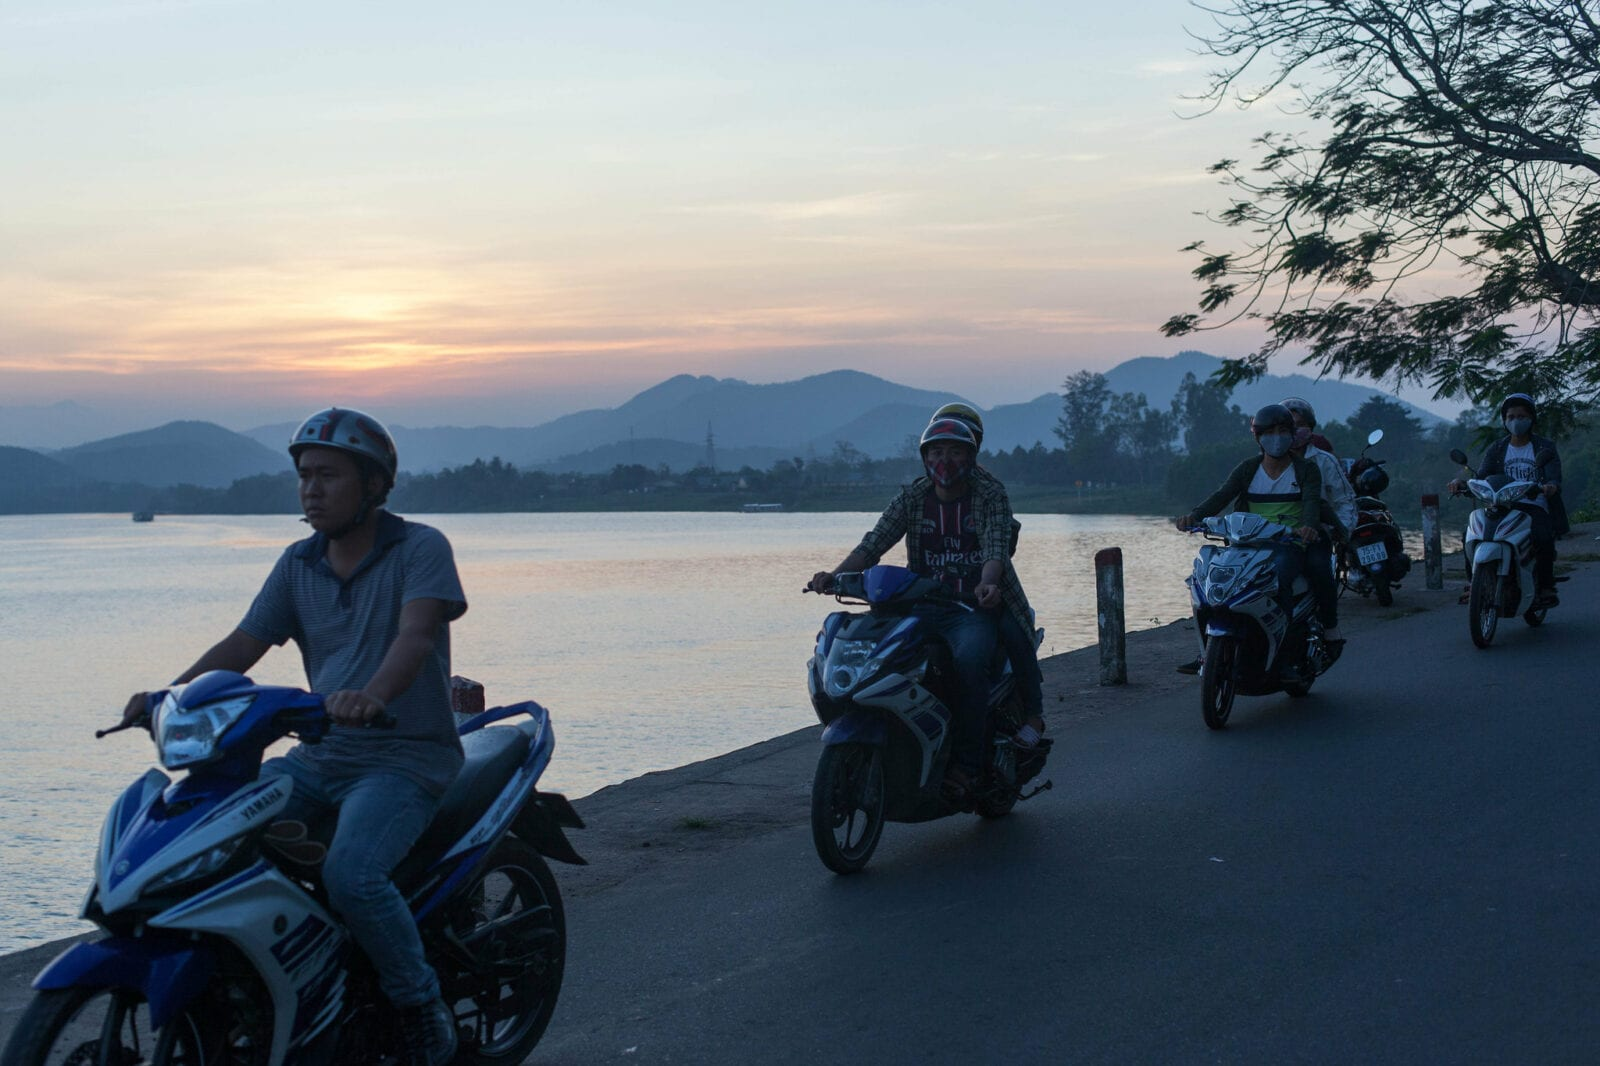 Image of motorbike riders on the waterfront in vietnam